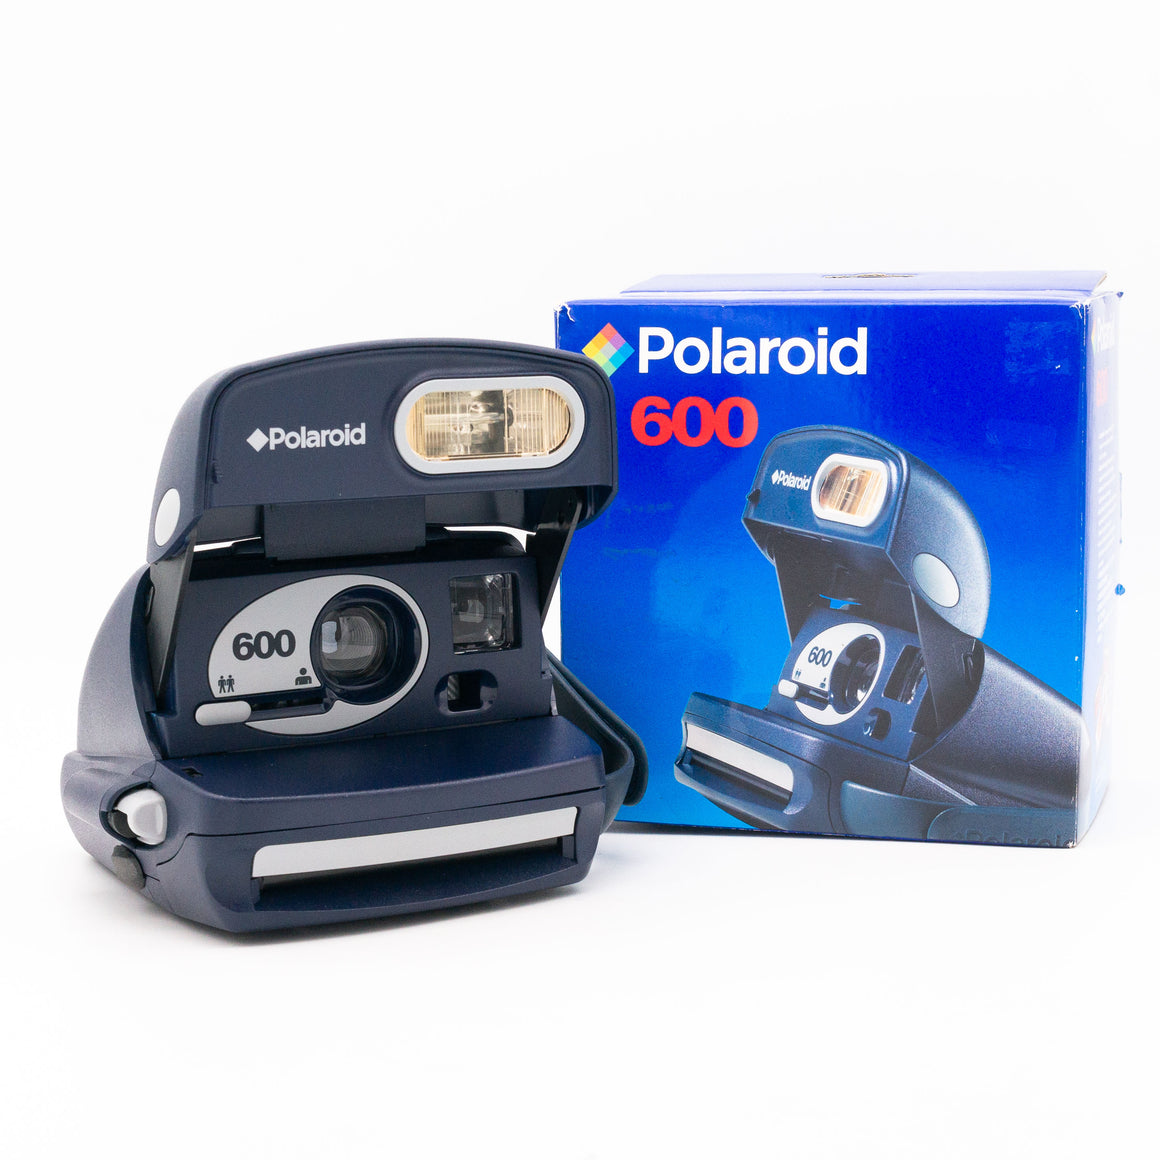 Navy Blue and Silver Polaroid 600